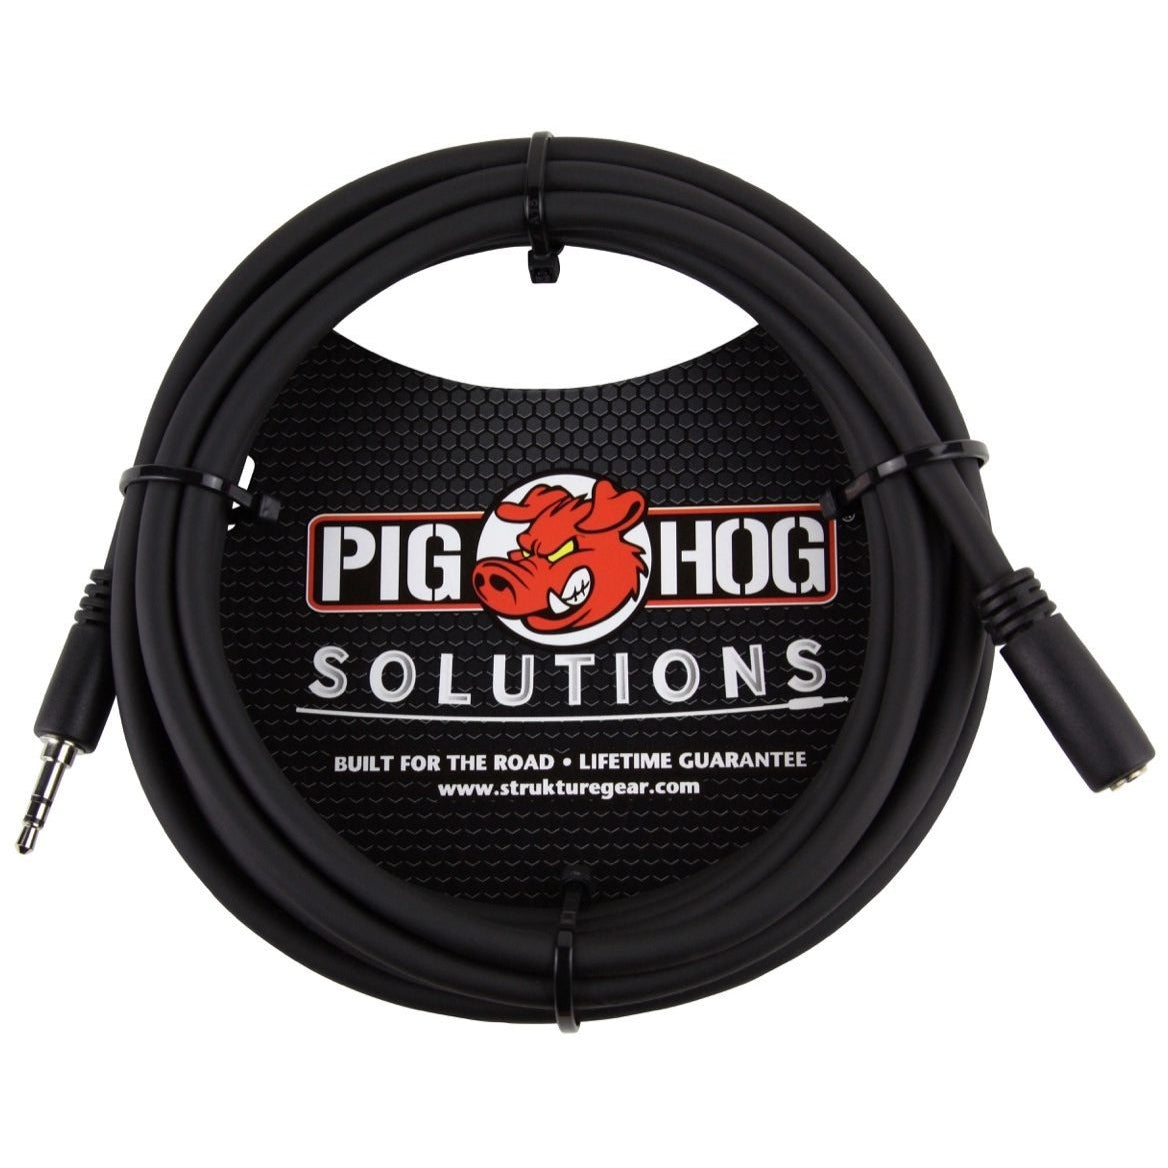 Pig Hog 1/8 Inch TRS Headphone Extension Cable, 10 Foot